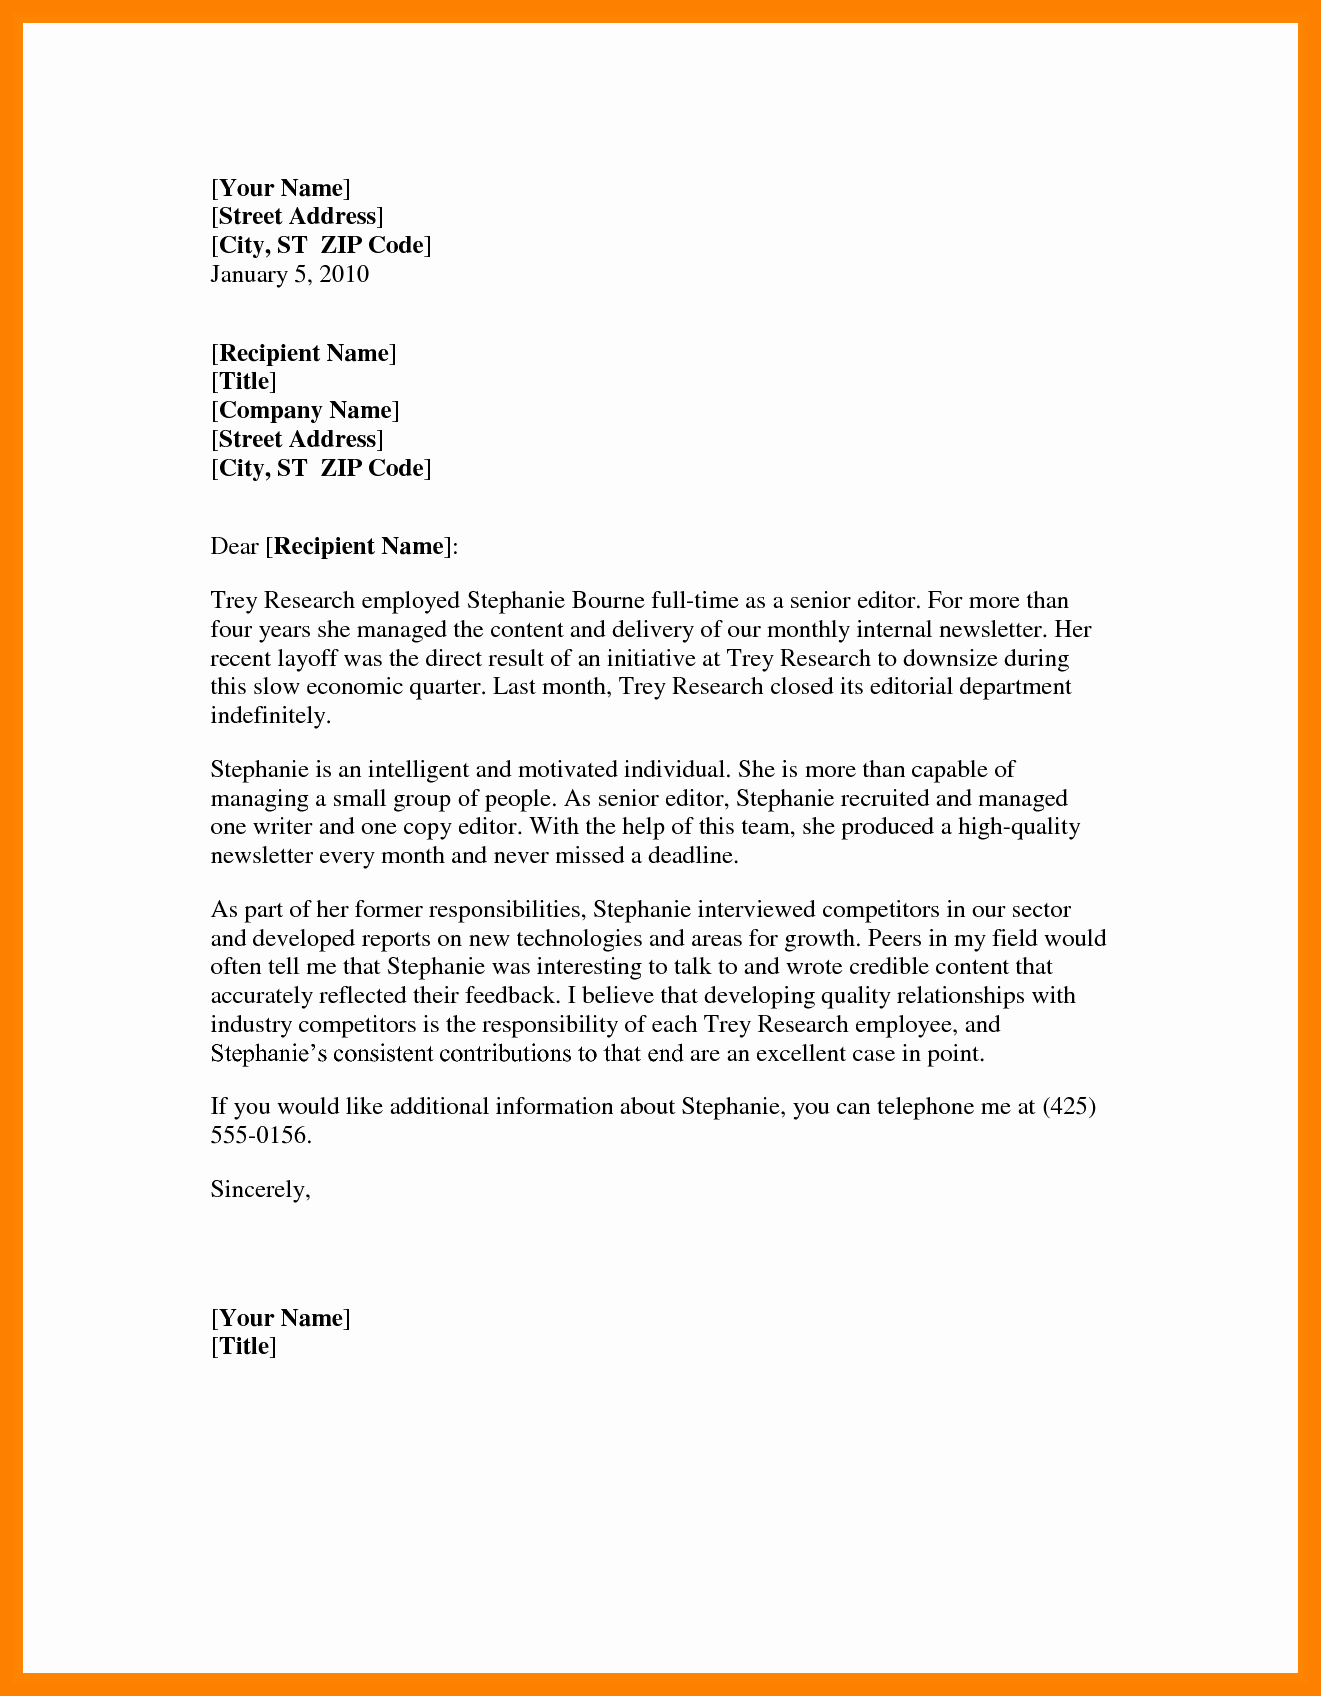 Formal Business Letter format Template Luxury Professional Letter Template